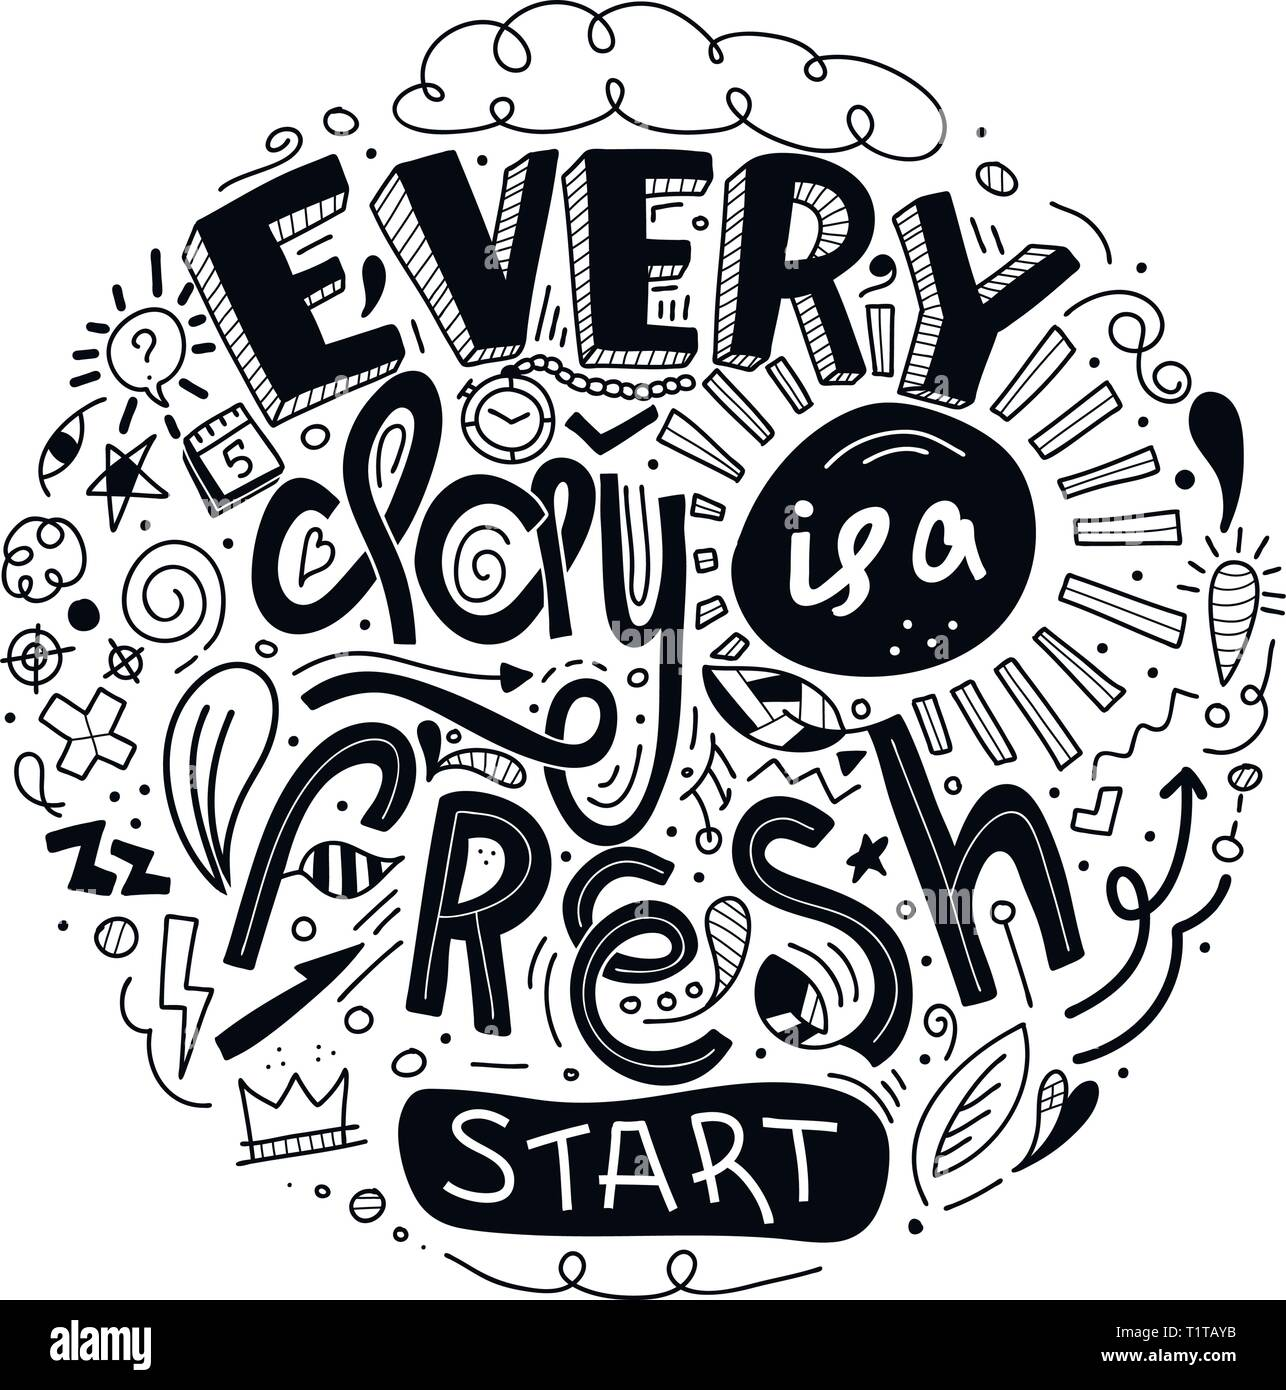 Lettering Quotes Motivation For Life And Happiness Every Day Is A Fresh Start Doodle Inspirational Quote Morning Motivational Quotes Design For Pos Stock Vector Image Art Alamy